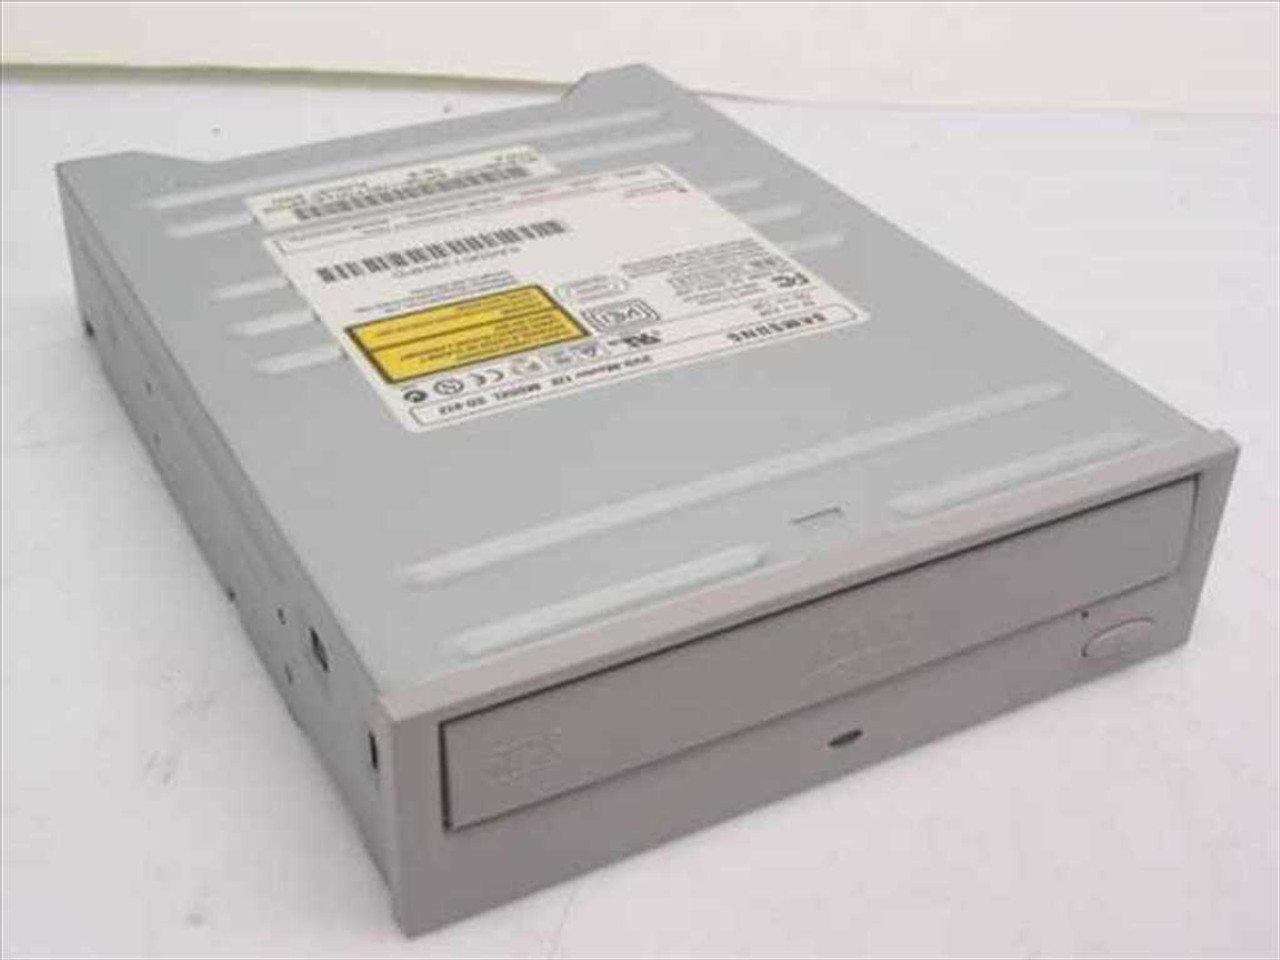 COMPAQ DVD-ROM SD-612B WINDOWS 8 DRIVERS DOWNLOAD